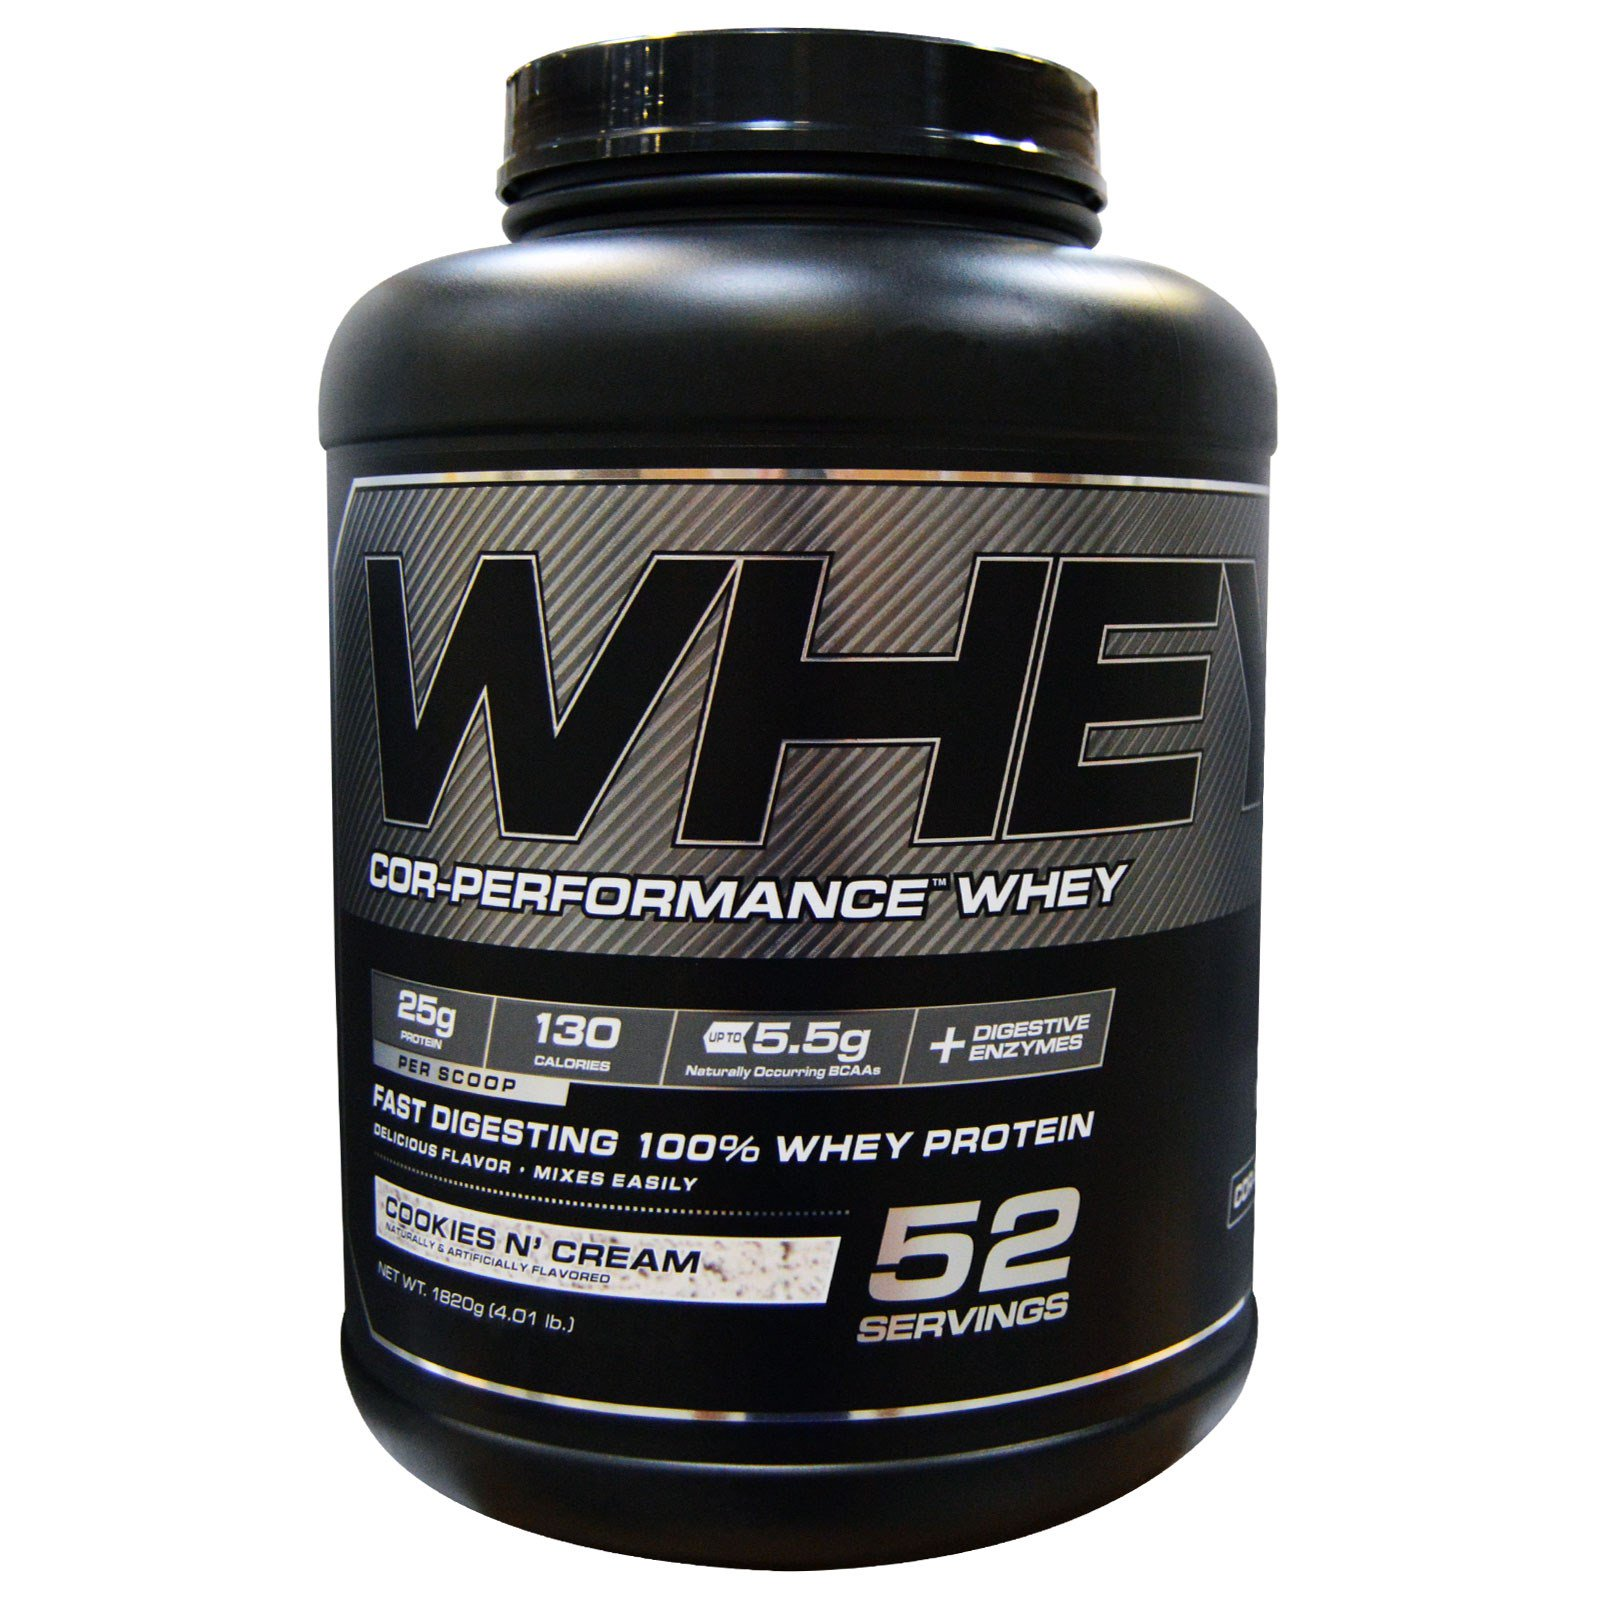 COR-Performance Whey 4lb cook. - COR